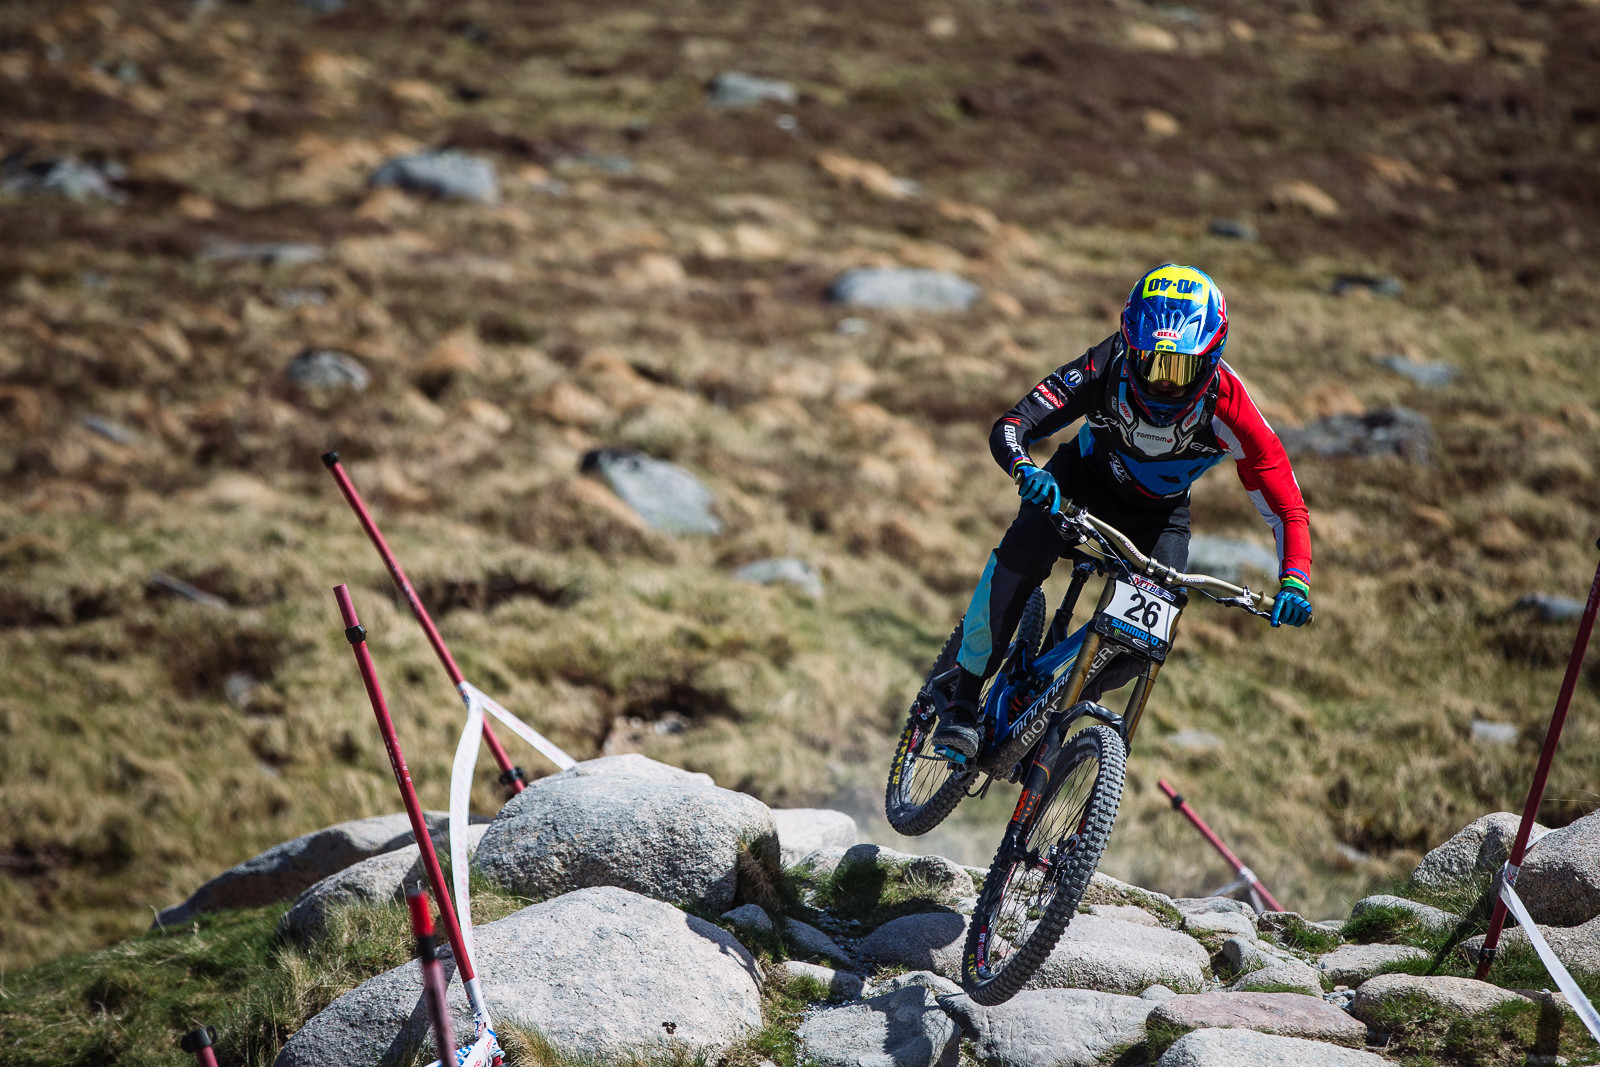 Danny Hart wins the 2016 BDS at Fort William - Fort William DH Action from the British Downhill Series - Mountain Biking Pictures - Vital MTB